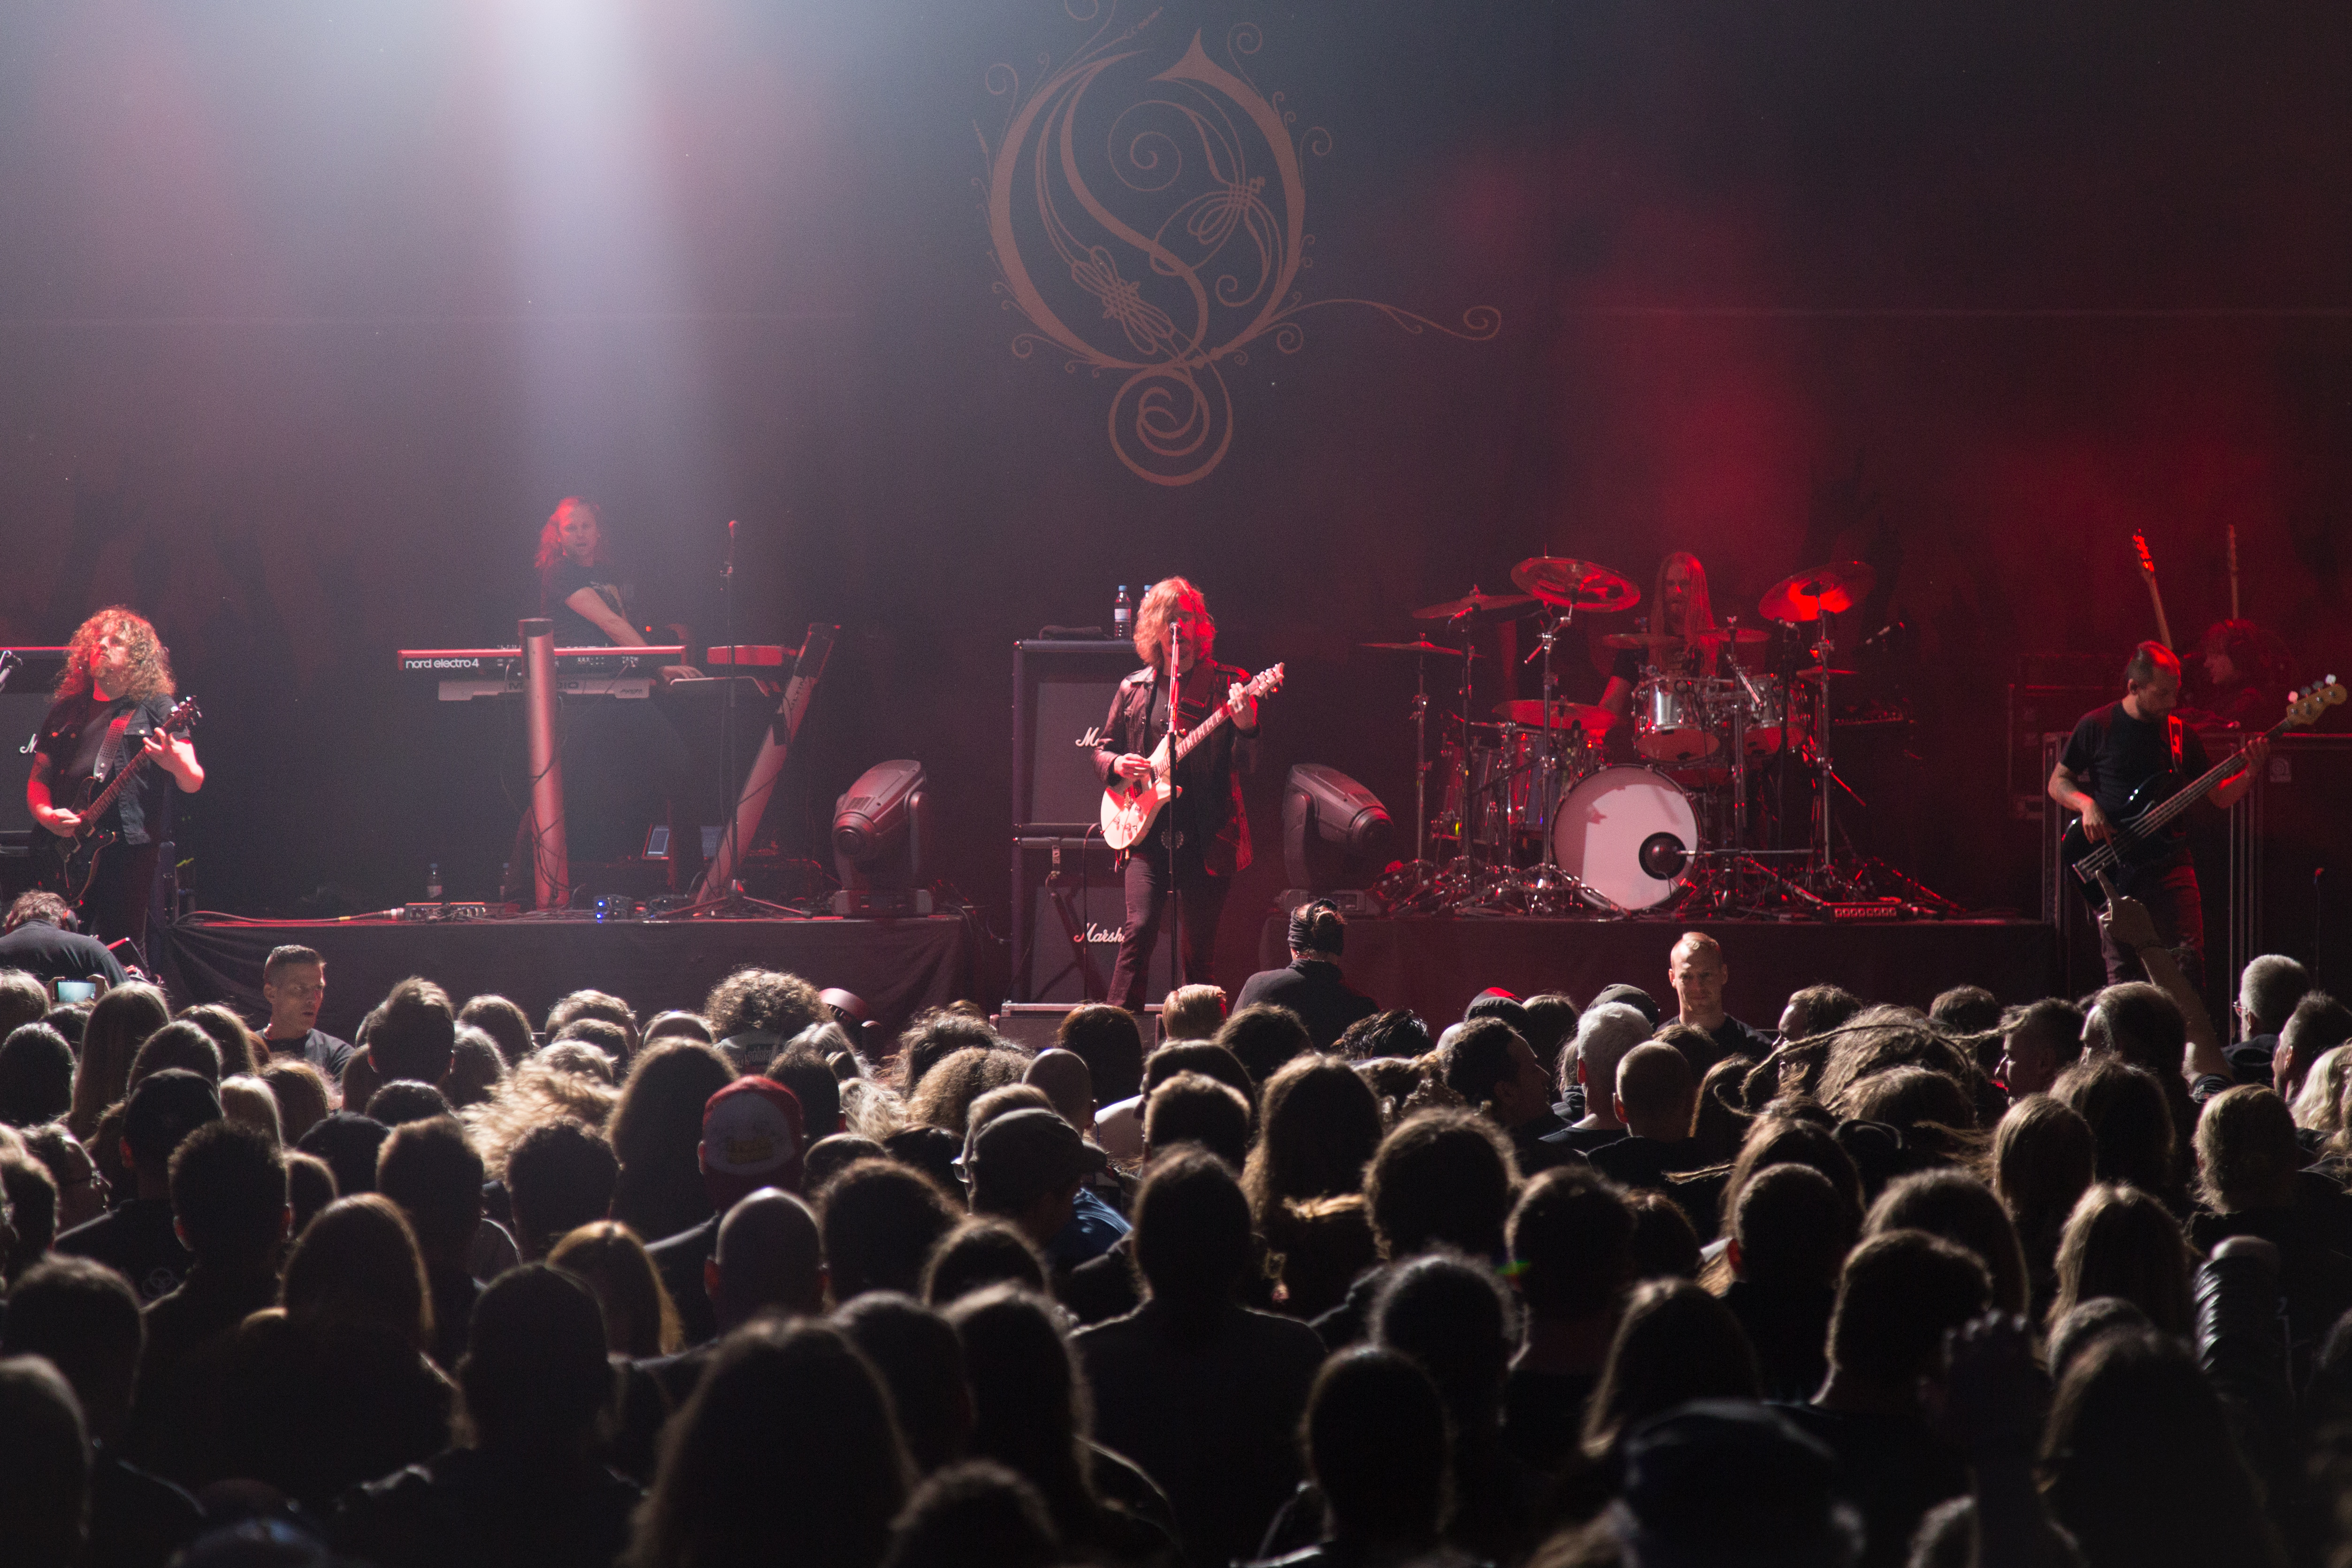 Opeth Wikipedia